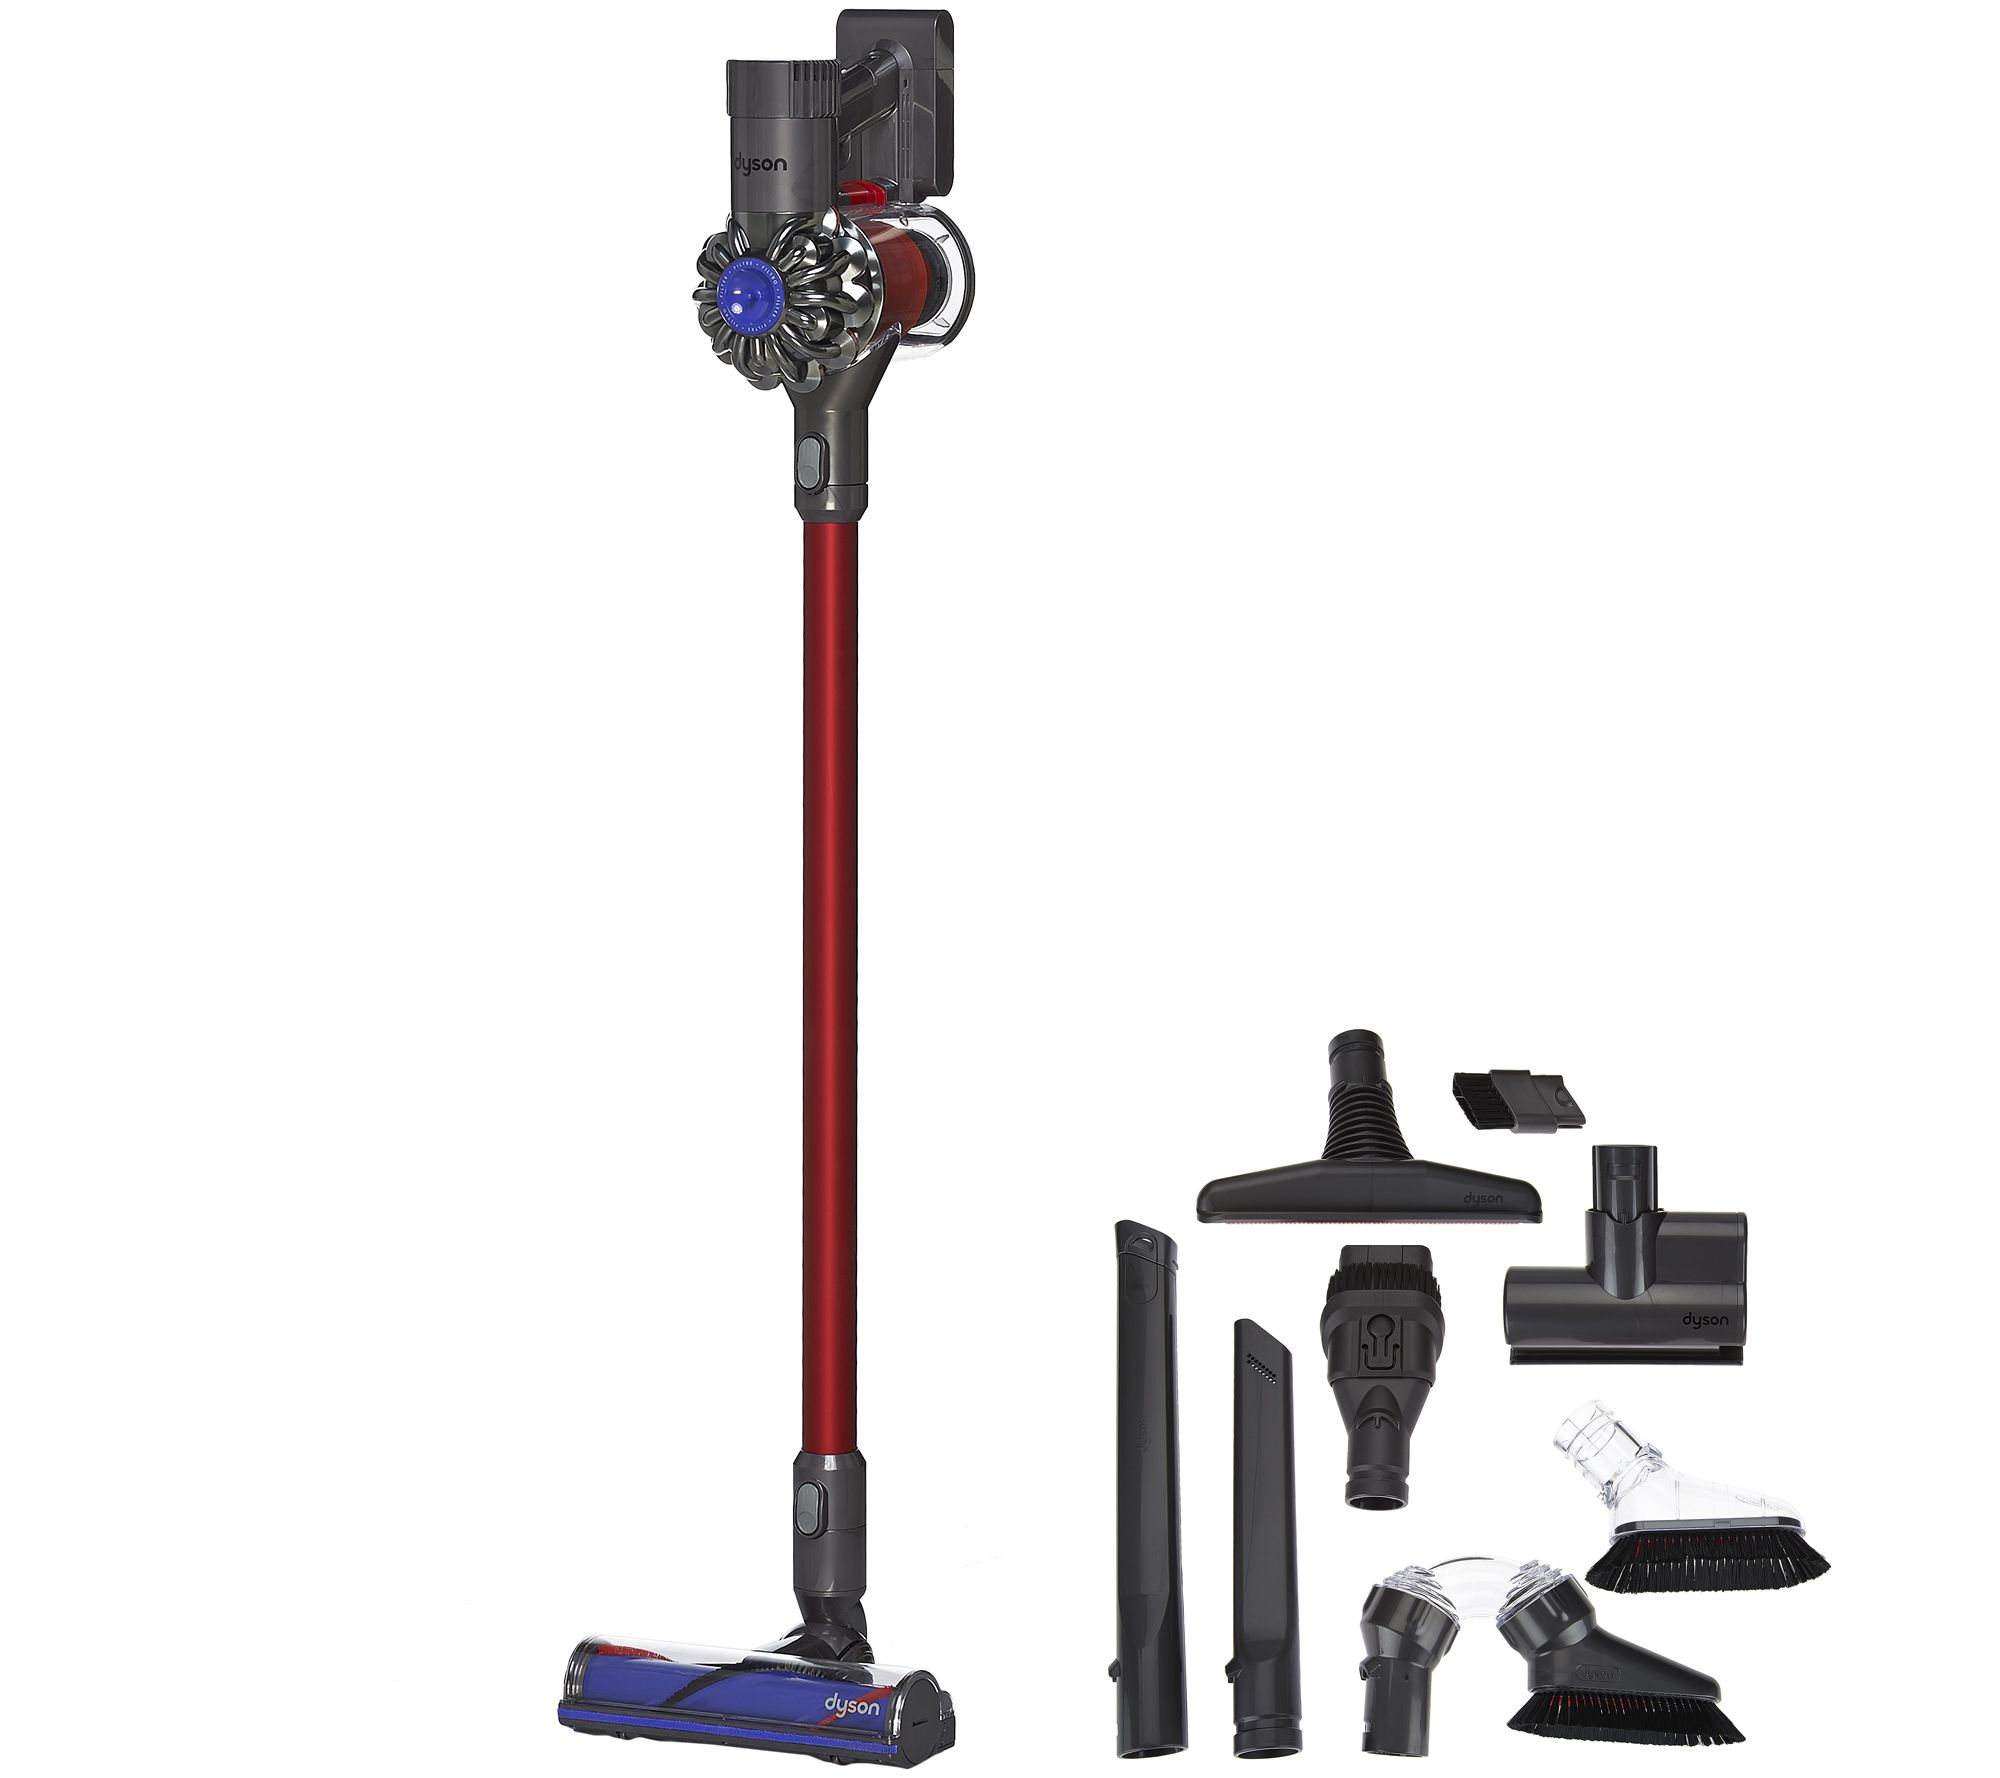 Dyson V6 Animal Cordfree Vacuum with 7 Cleaning Tools